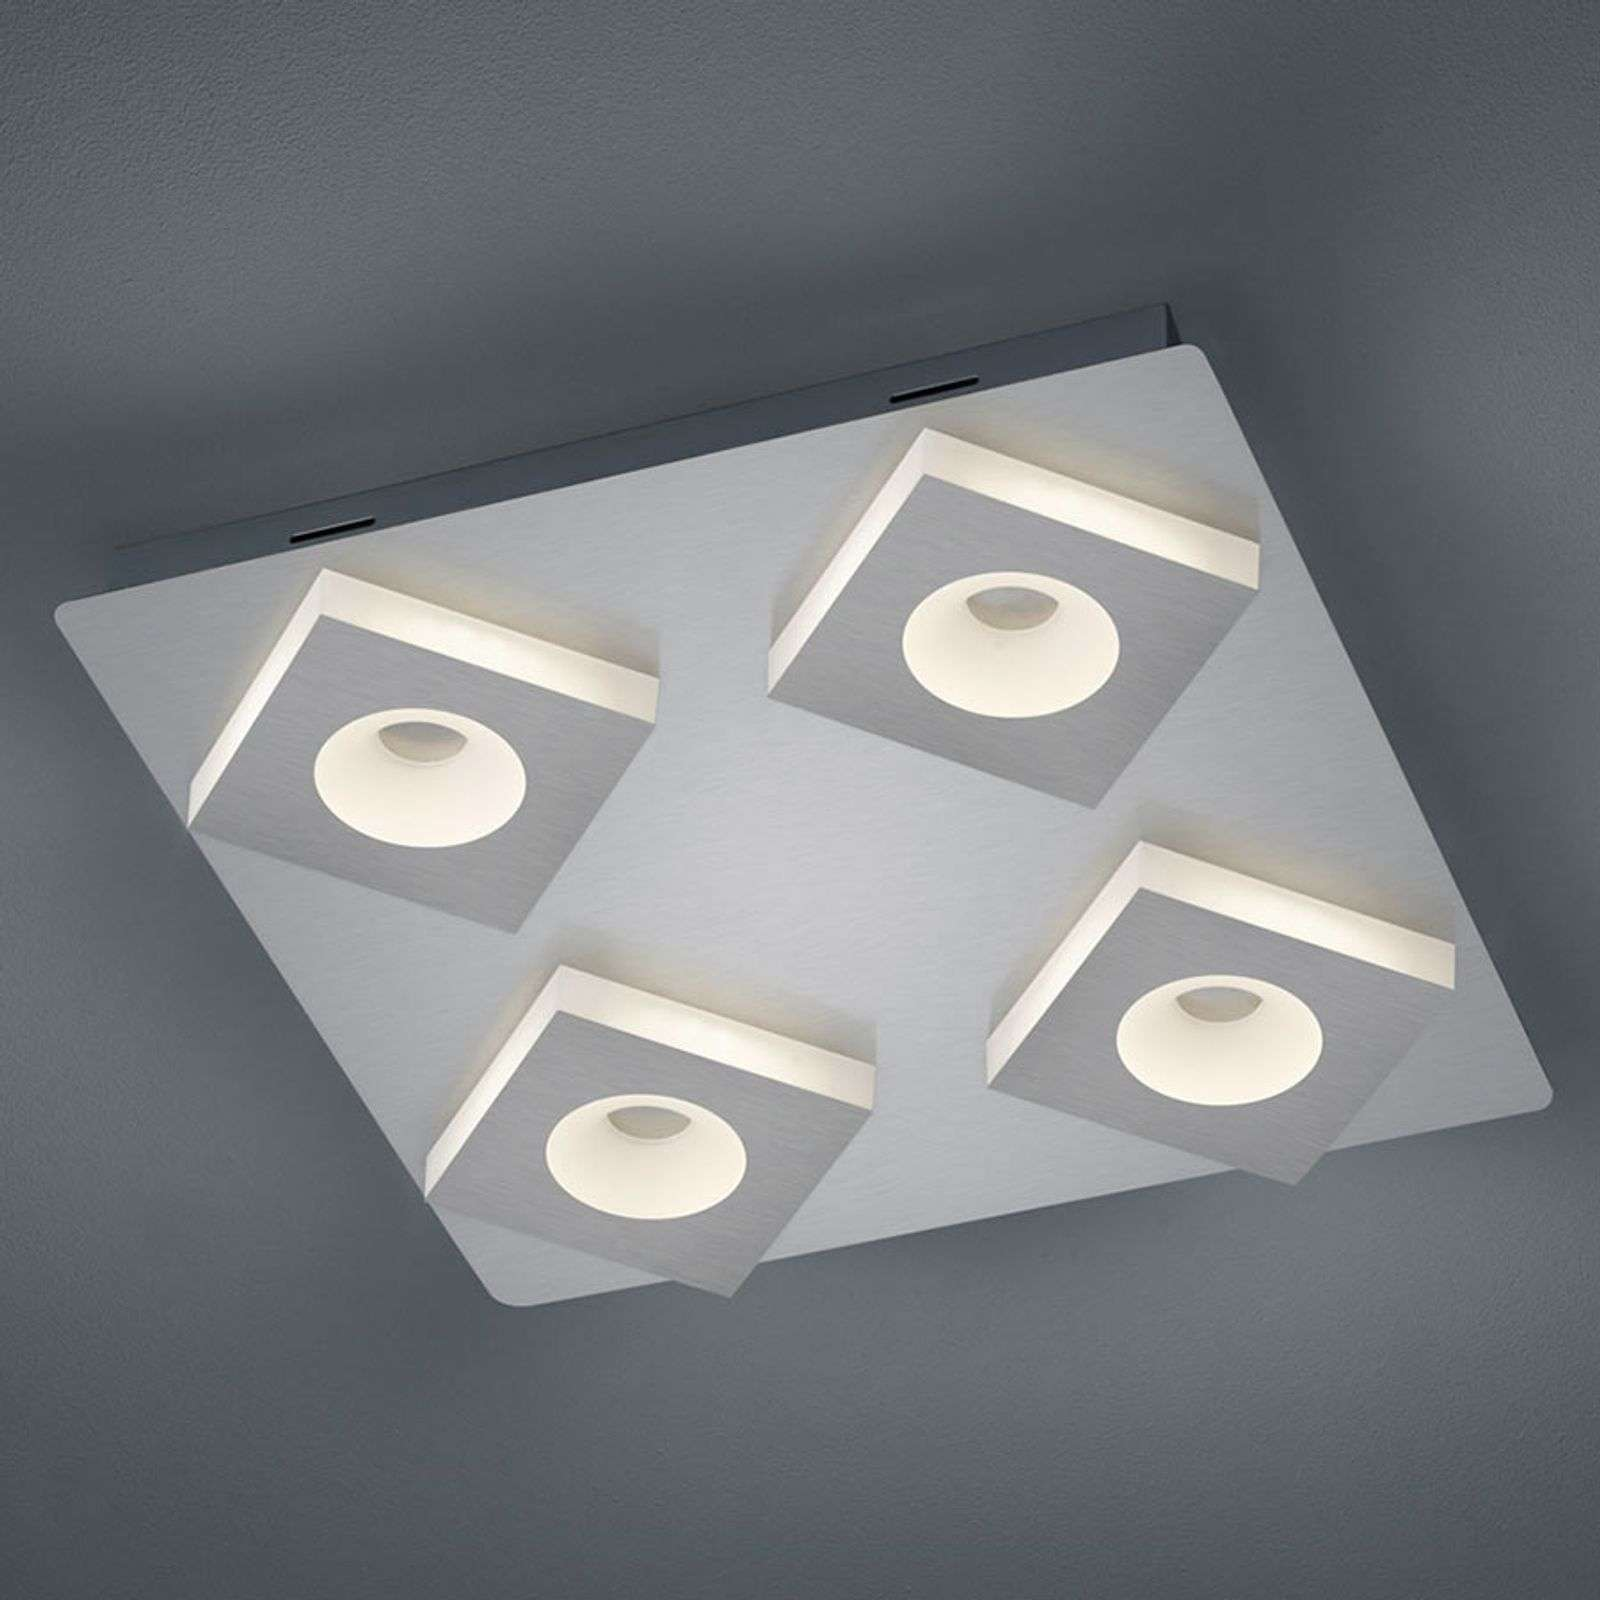 Plafonnier LED Atlanta très moderne, dimmable